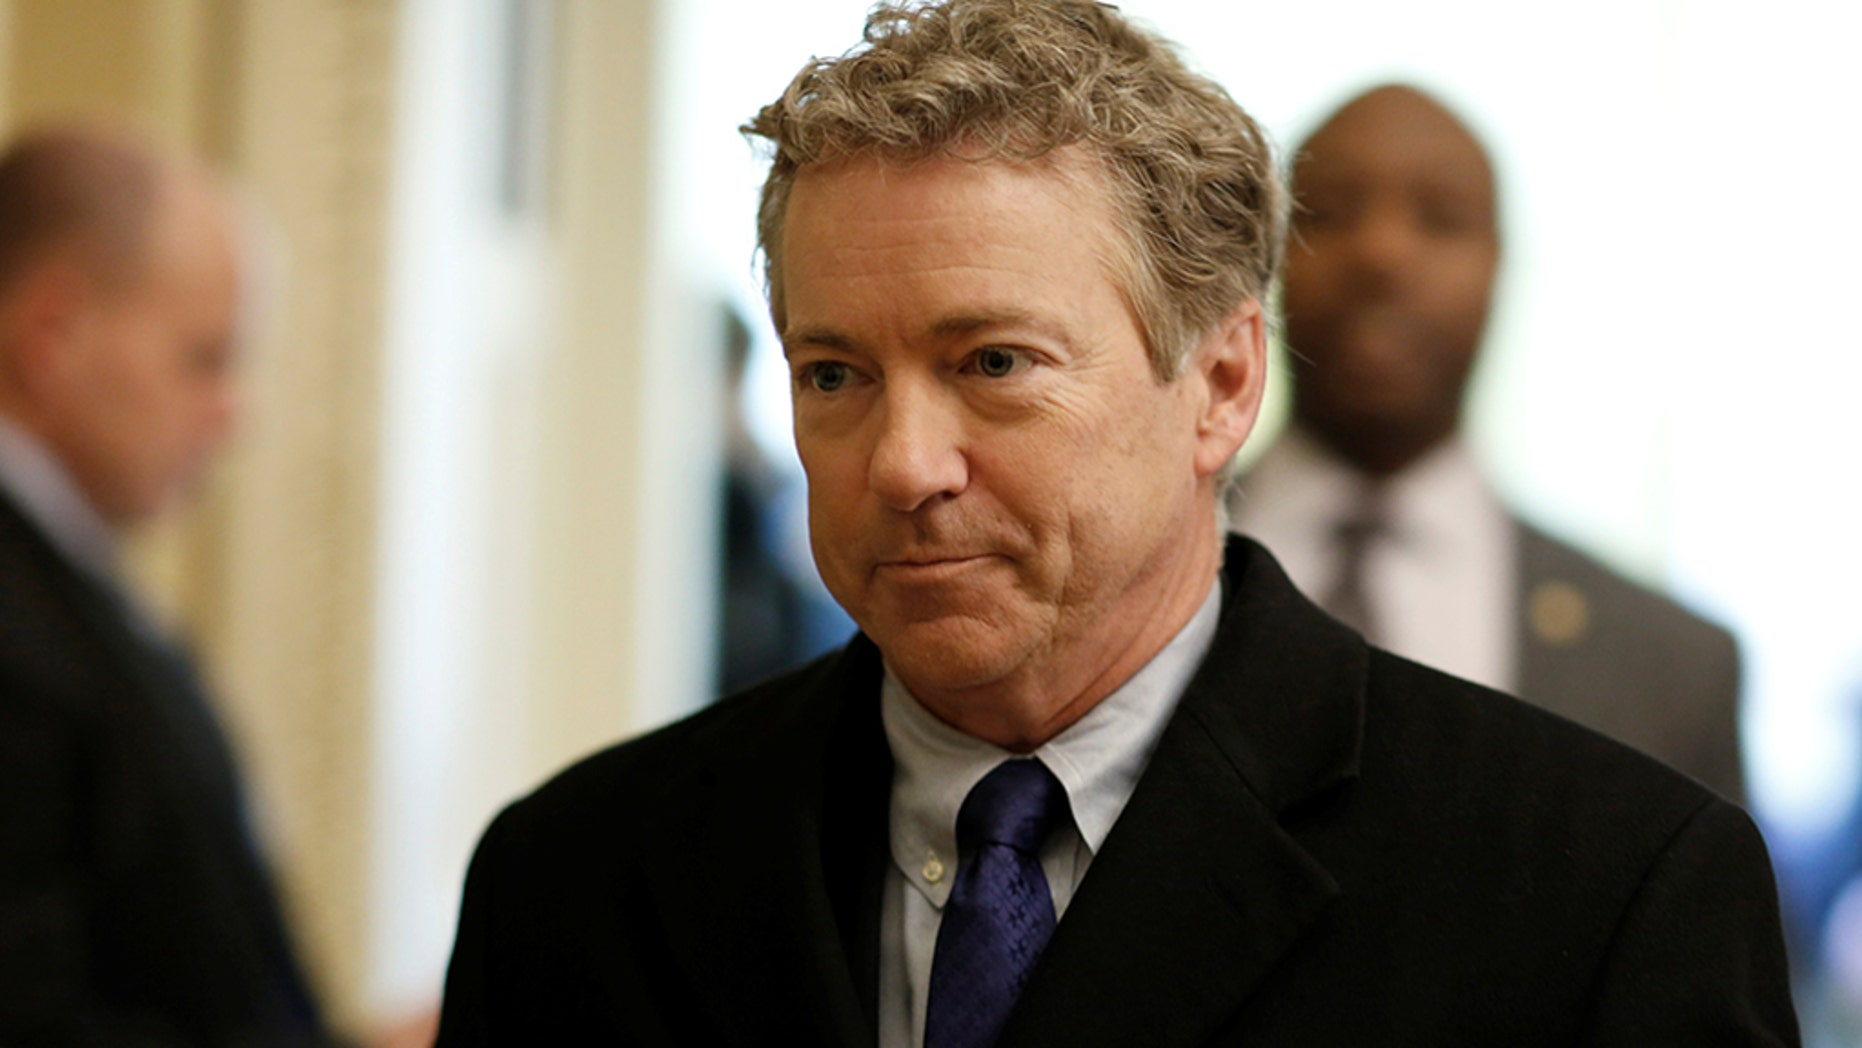 Rand Paul awarded more than $580K after neighbor's attack